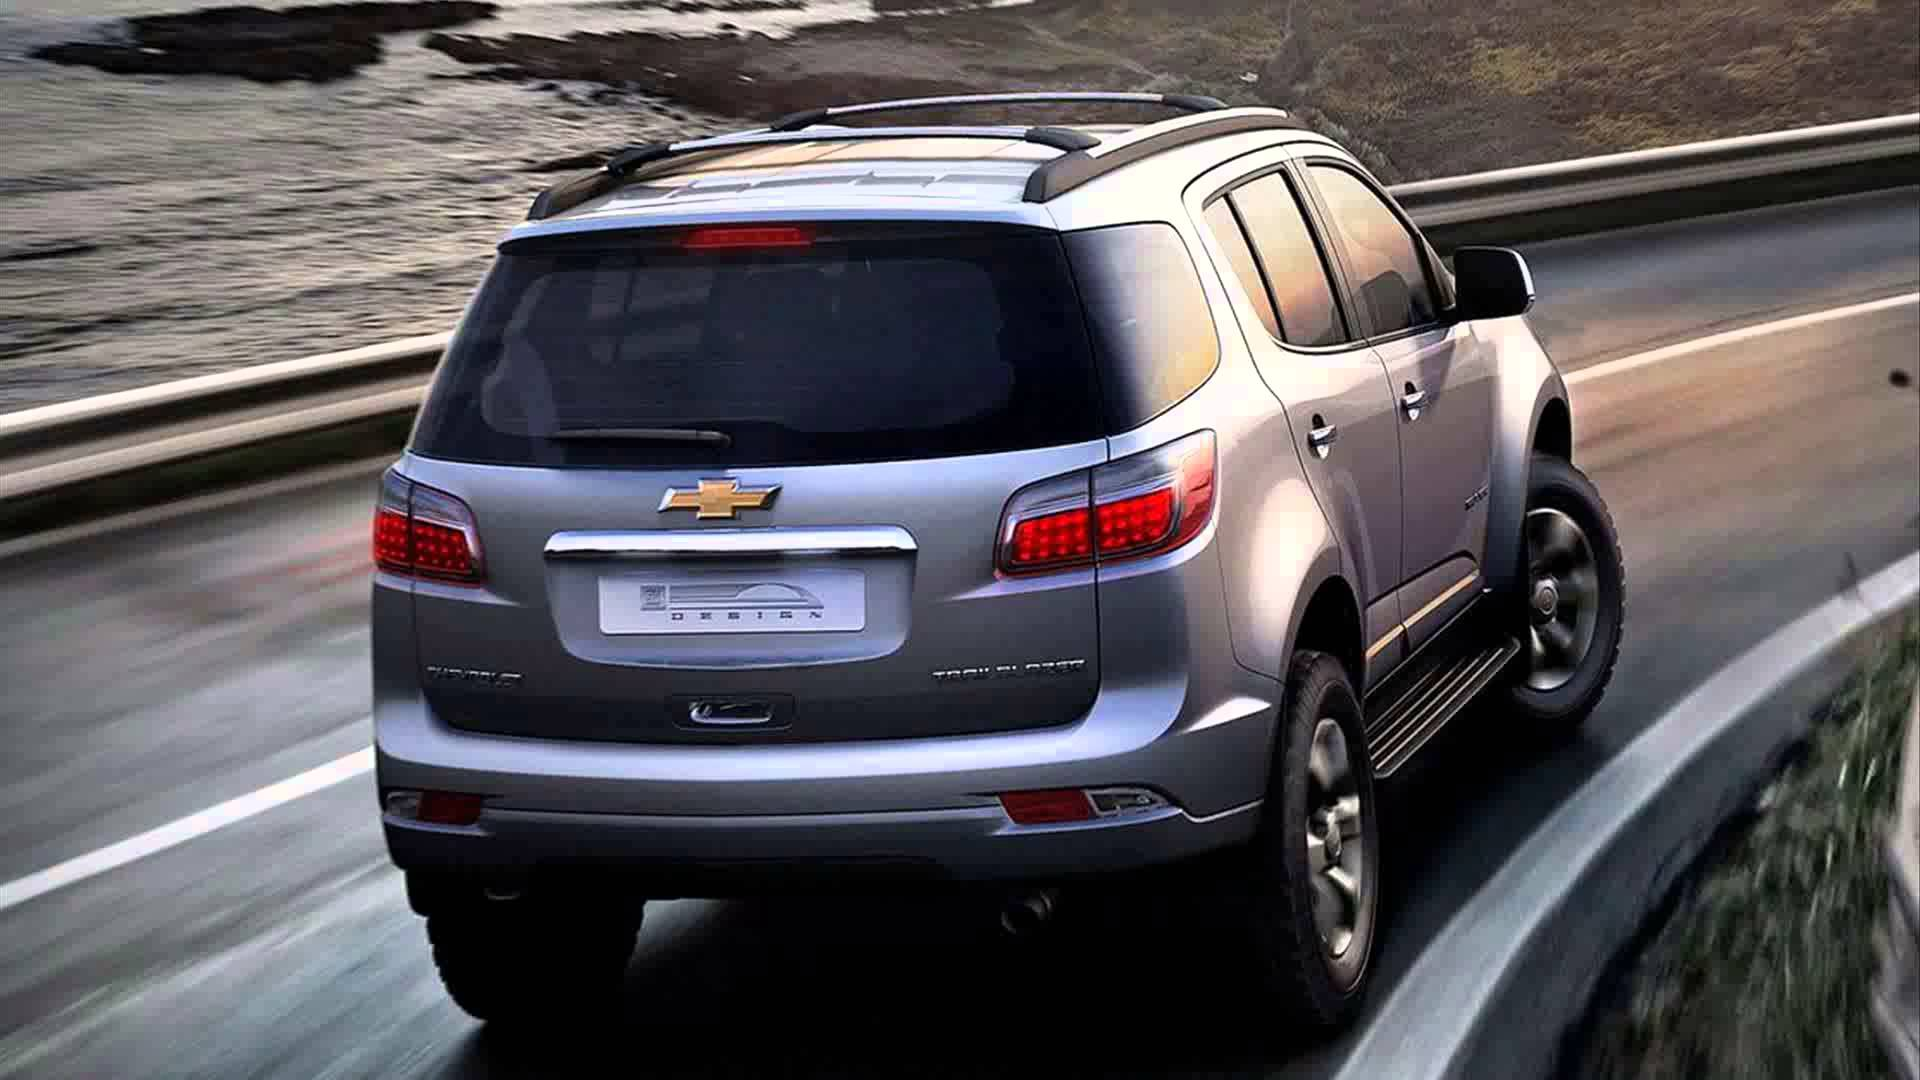 2015 Chevy Trailblazer >> Comparison Chevrolet Trailblazer 2015 Vs Chevrolet Trax Lt